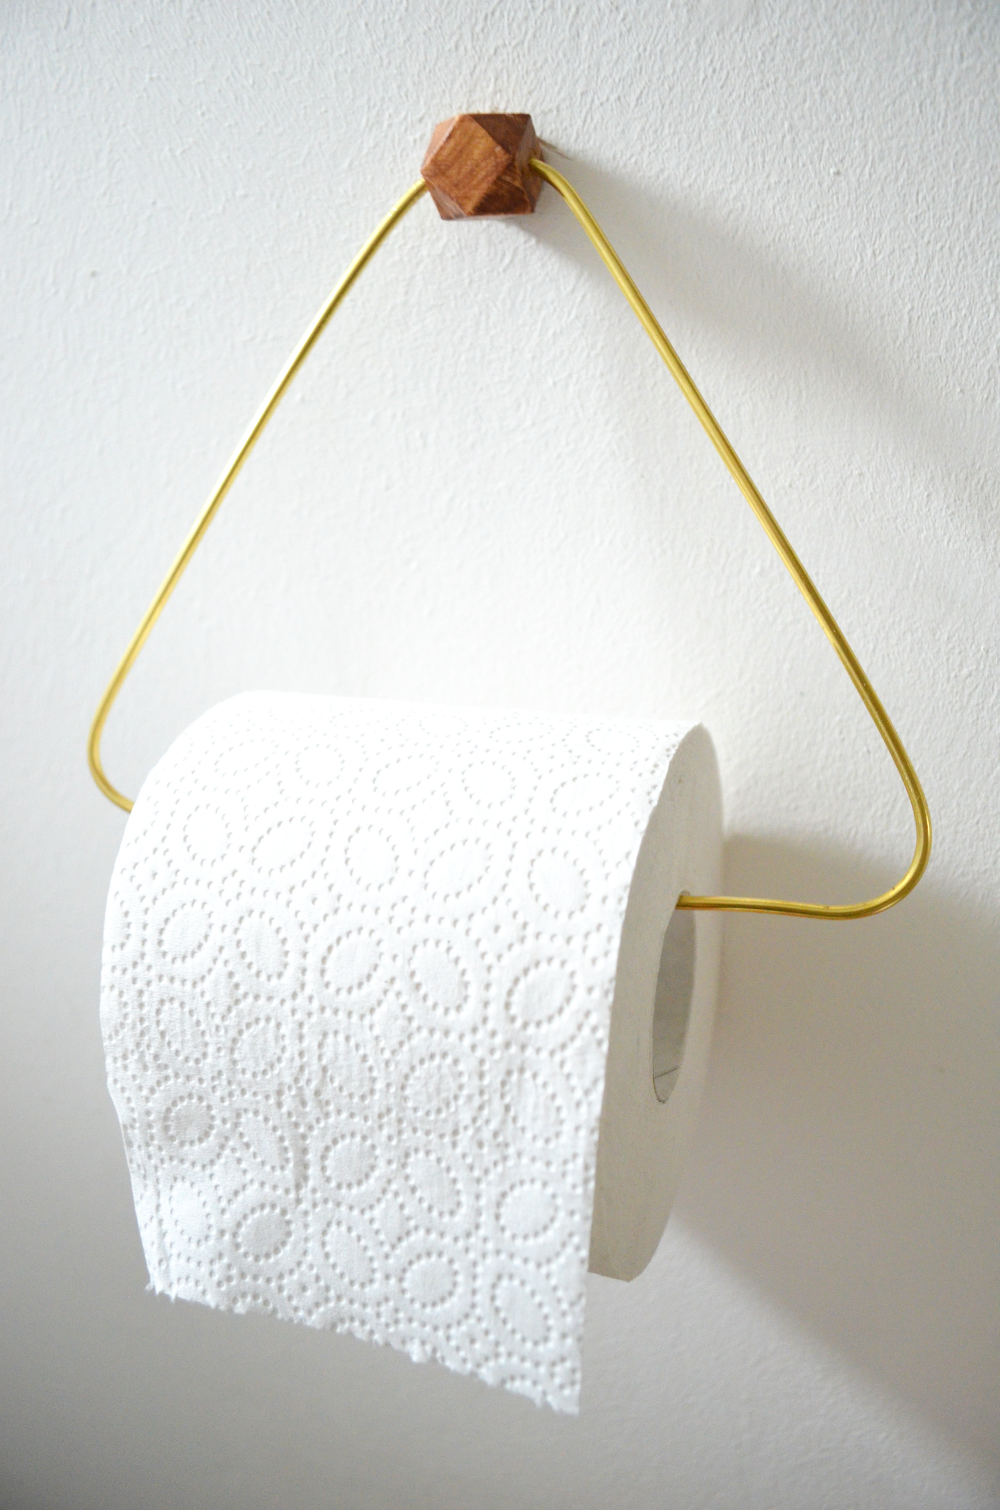 Gut Make It Boho : DIY Messing U0026 Holz Toilettenpapierhalter